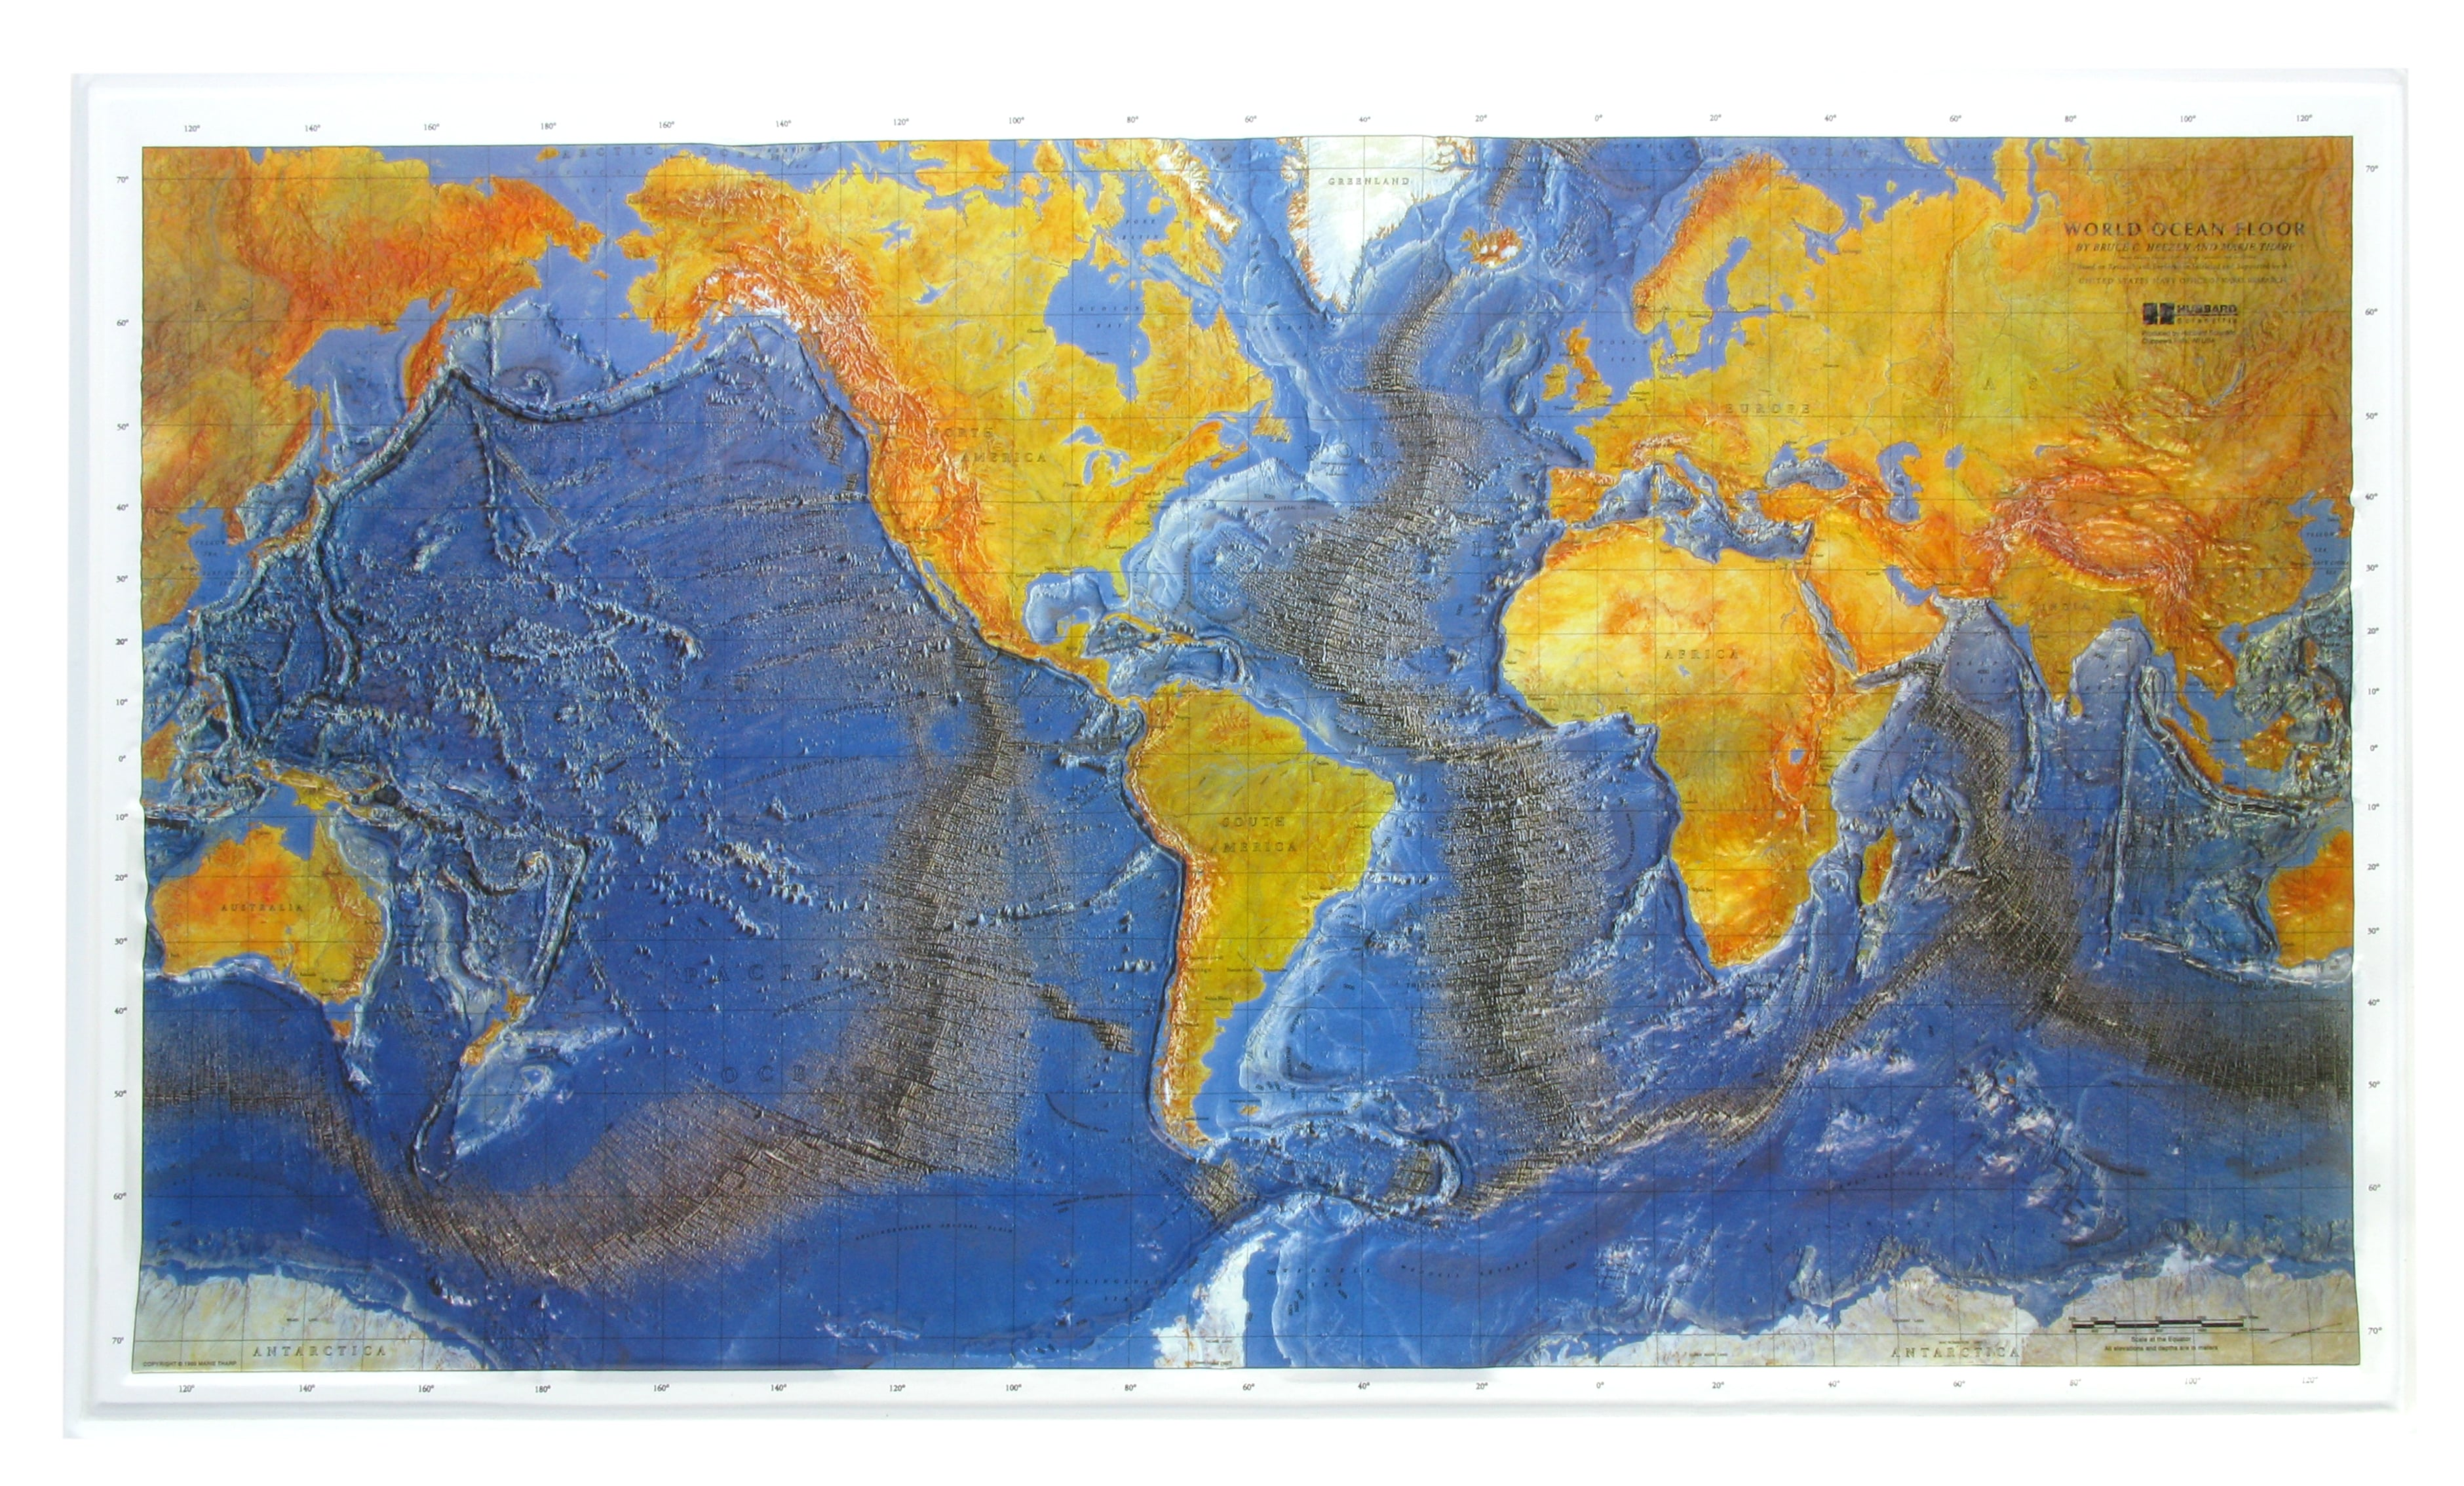 Relief Map Of The World.3d Relief World Map Ocean Floor Physical World Maps World Maps